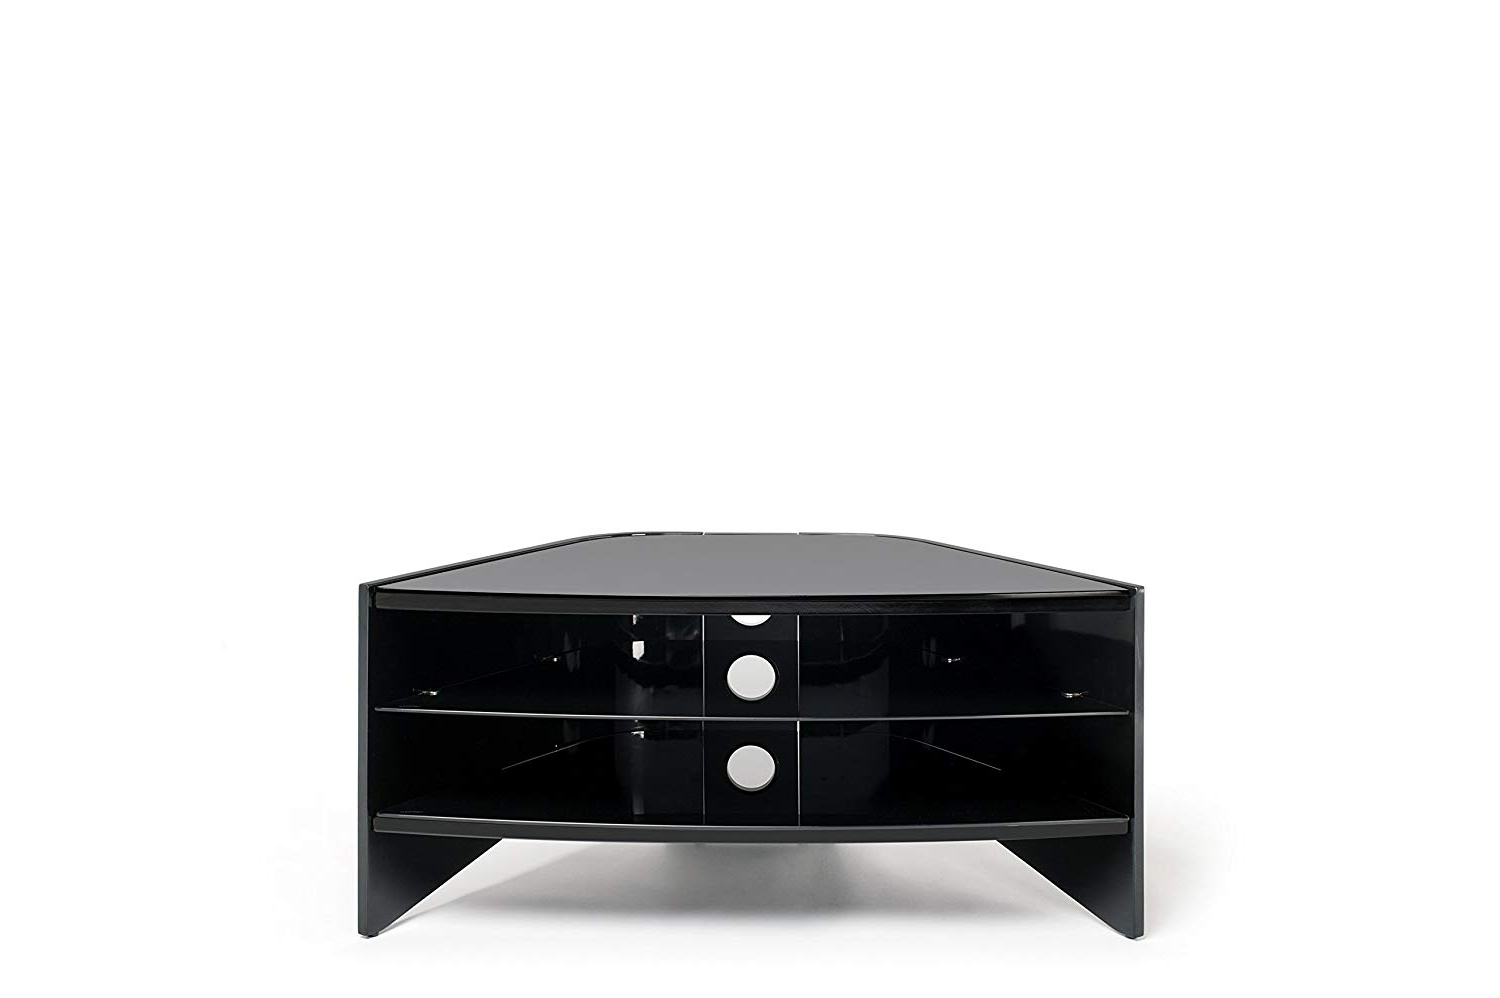 Most Current Techlink Riva Tv Stands Inside Techlink Riva Rv100b Curved High Gloss Black Side Panels And Glass (View 16 of 20)